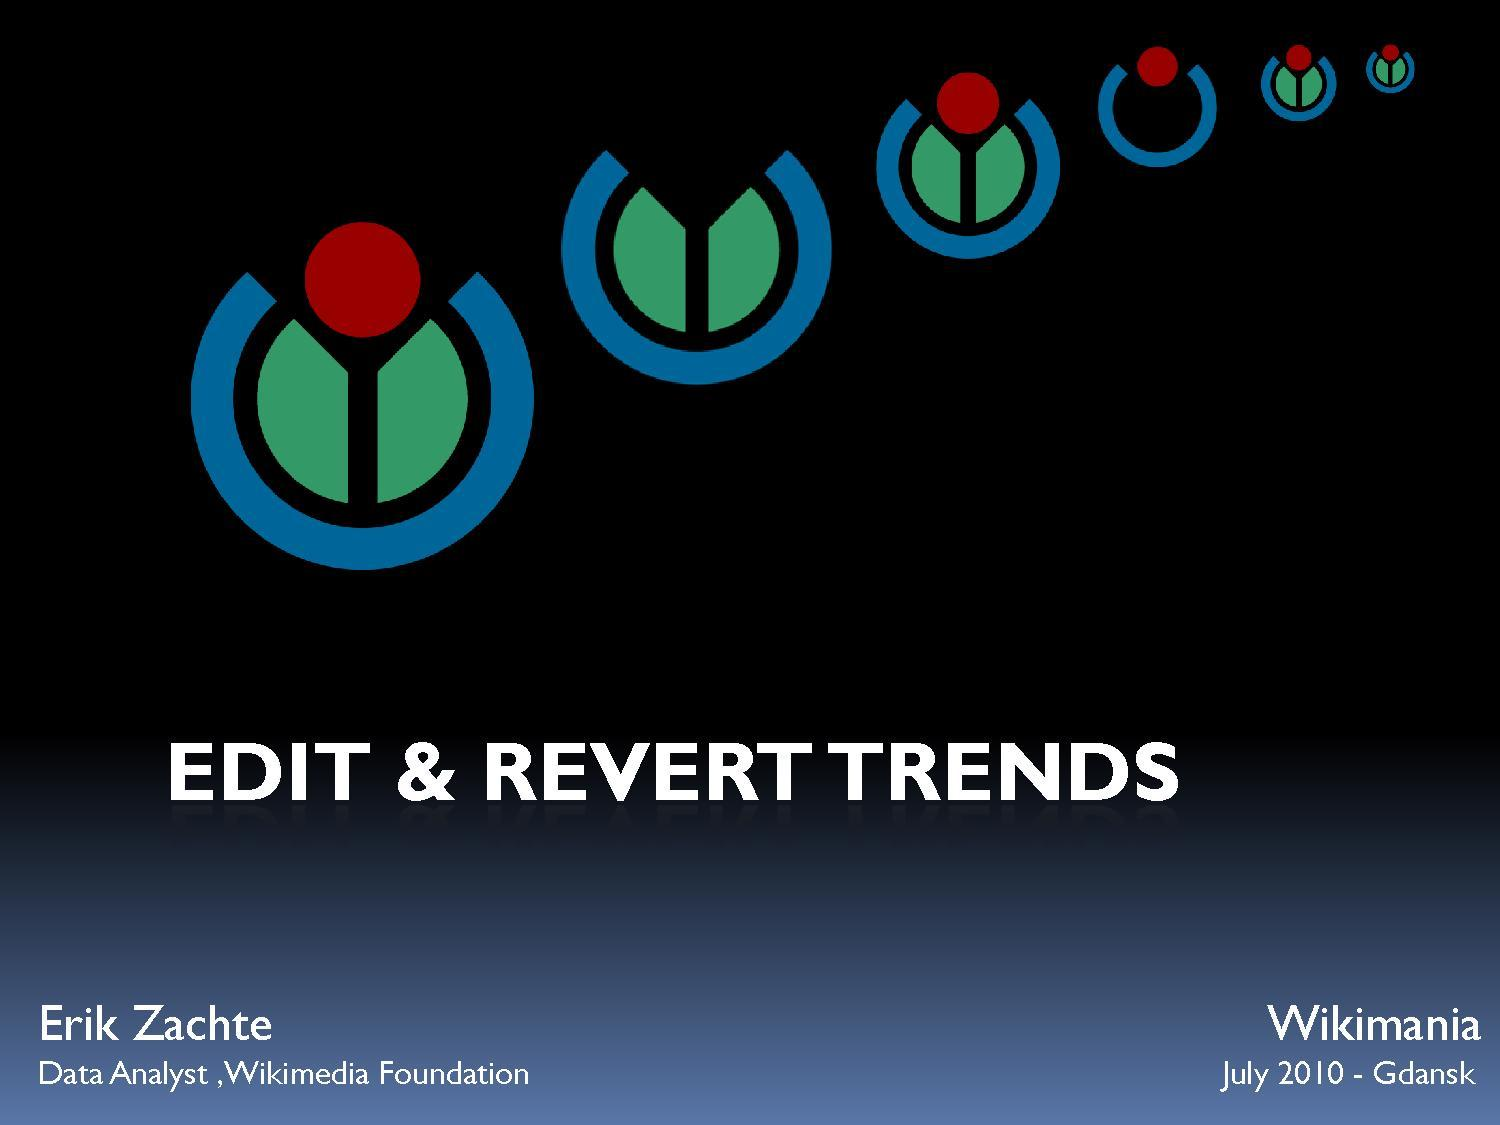 Erik Zachte, Edit and Revert Trends, Wikimania 2010.pdf